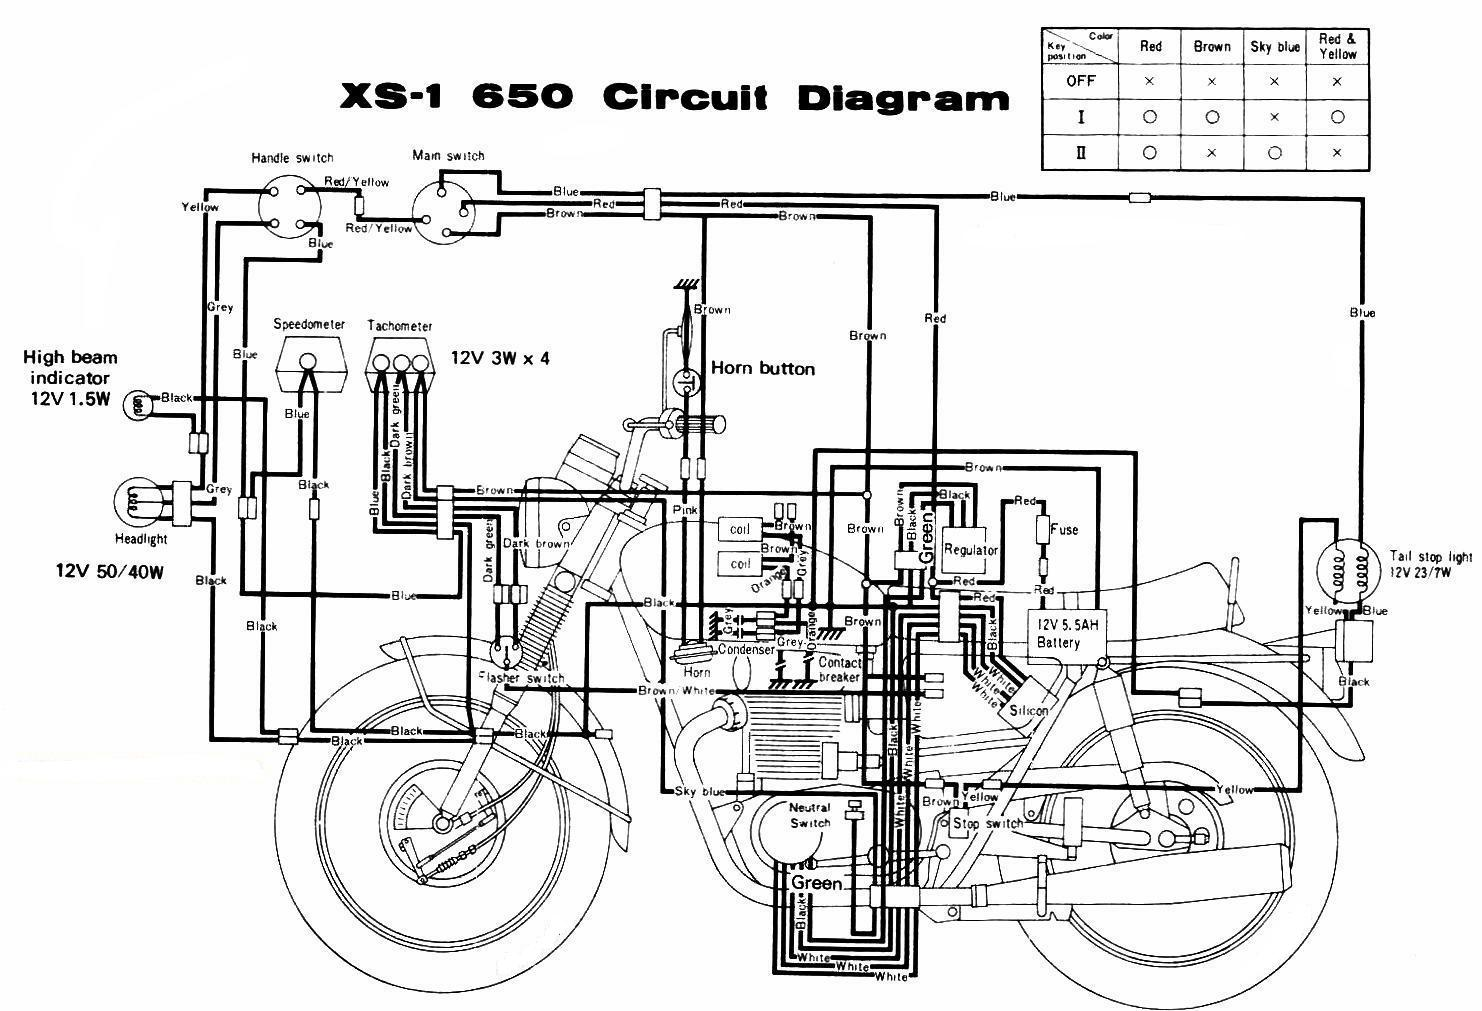 wiring diagrams rh oregonmotorcycleparts com Basic Wiring For Dummies Basic Wiring For Dummies